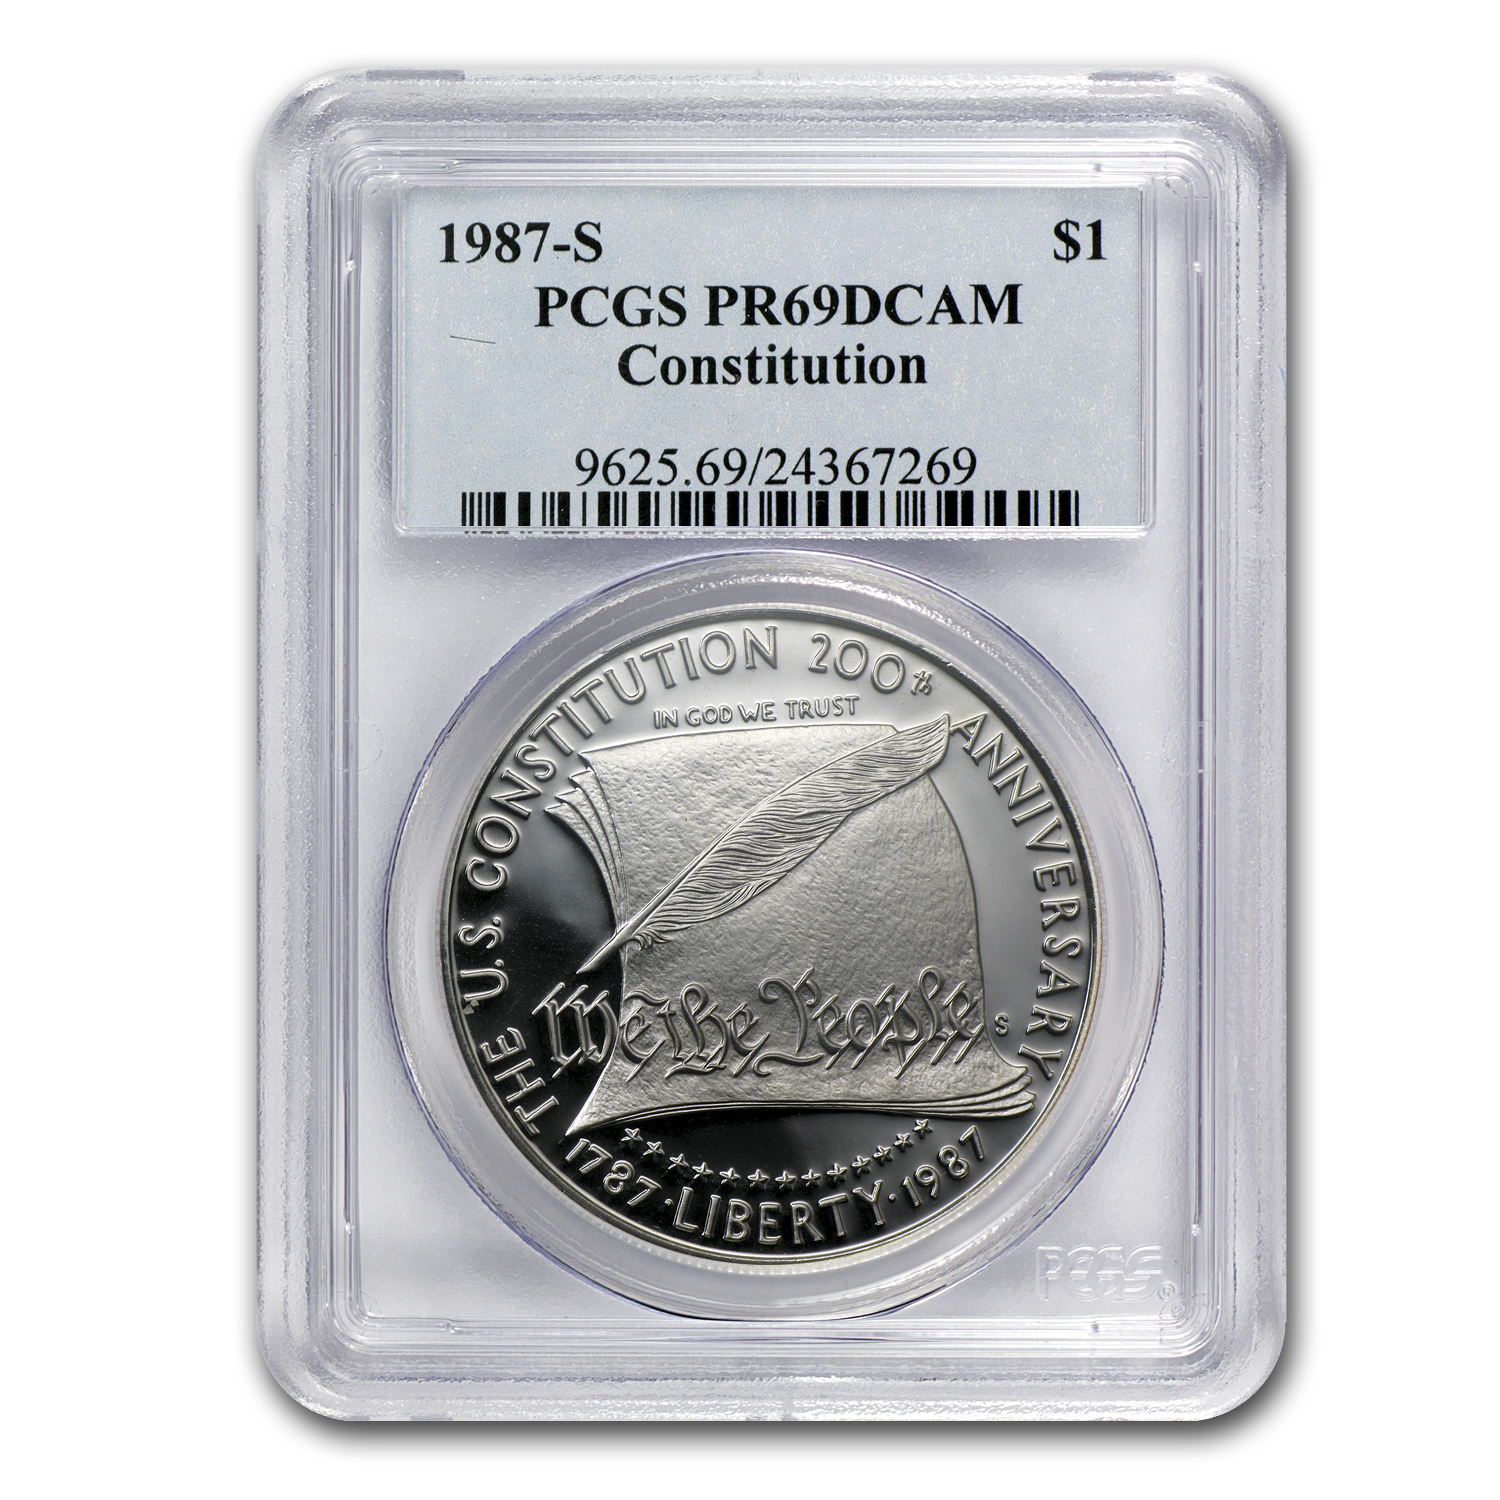 1987-S Constitution $1 Silver Commemorative PR-69 PCGS